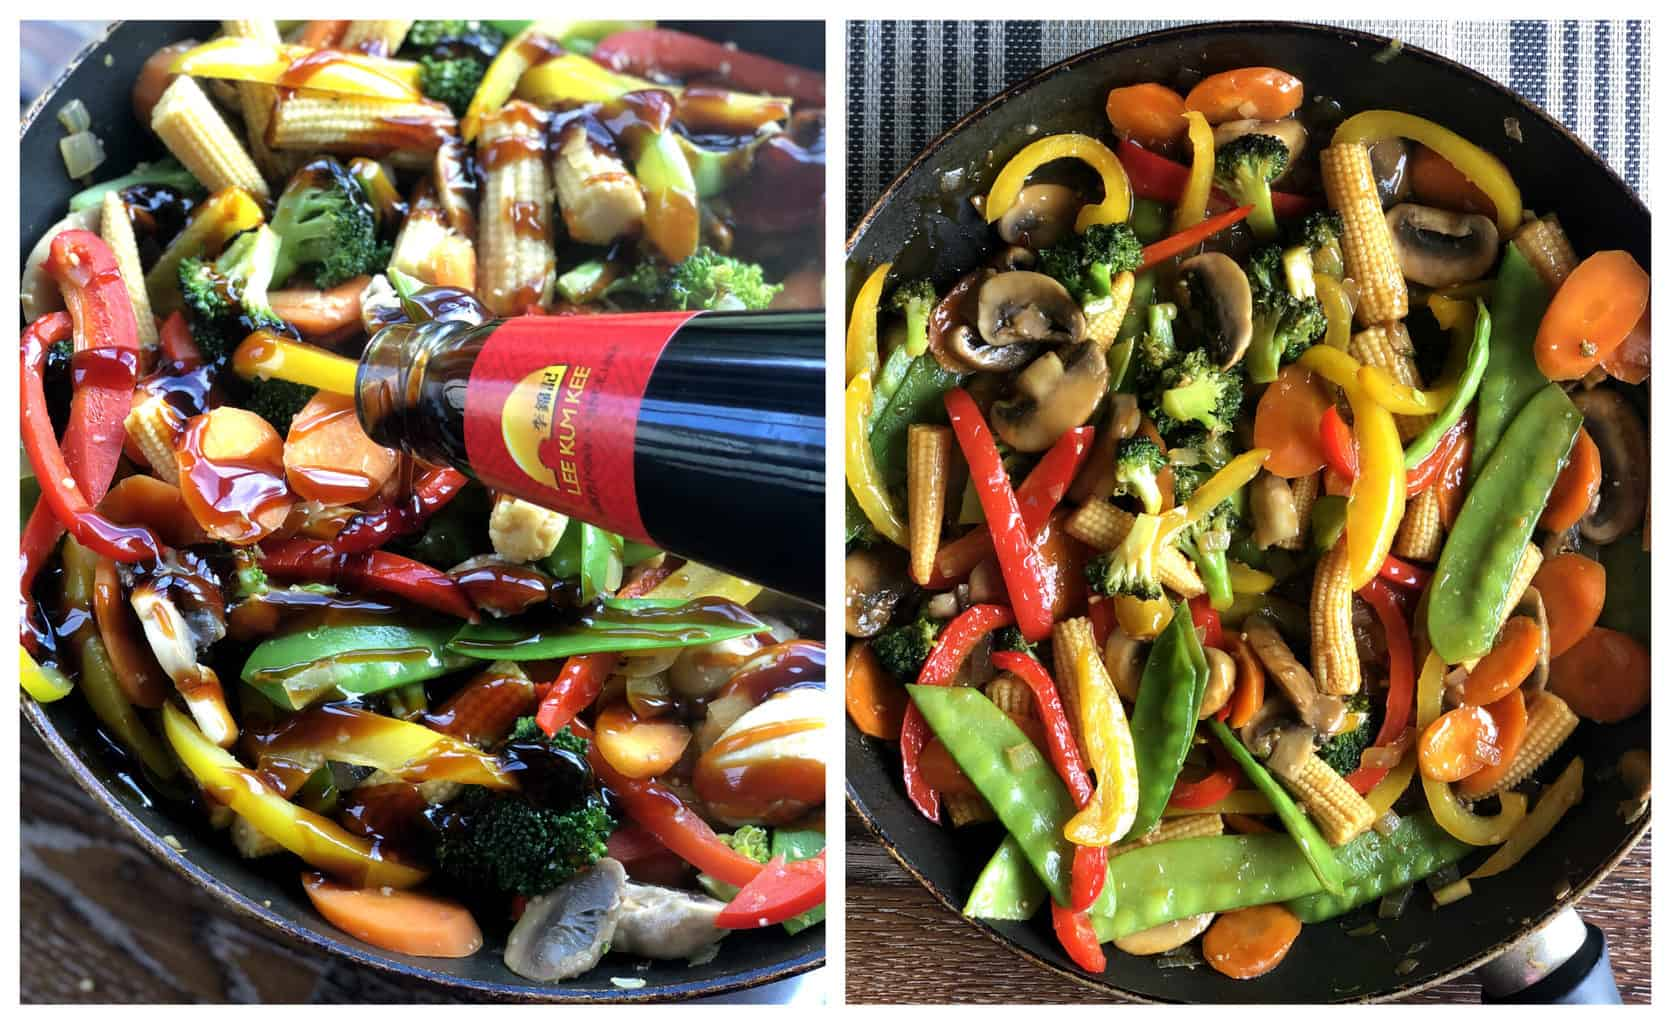 Two photos in a collage showing how to add sauce to the stir fry